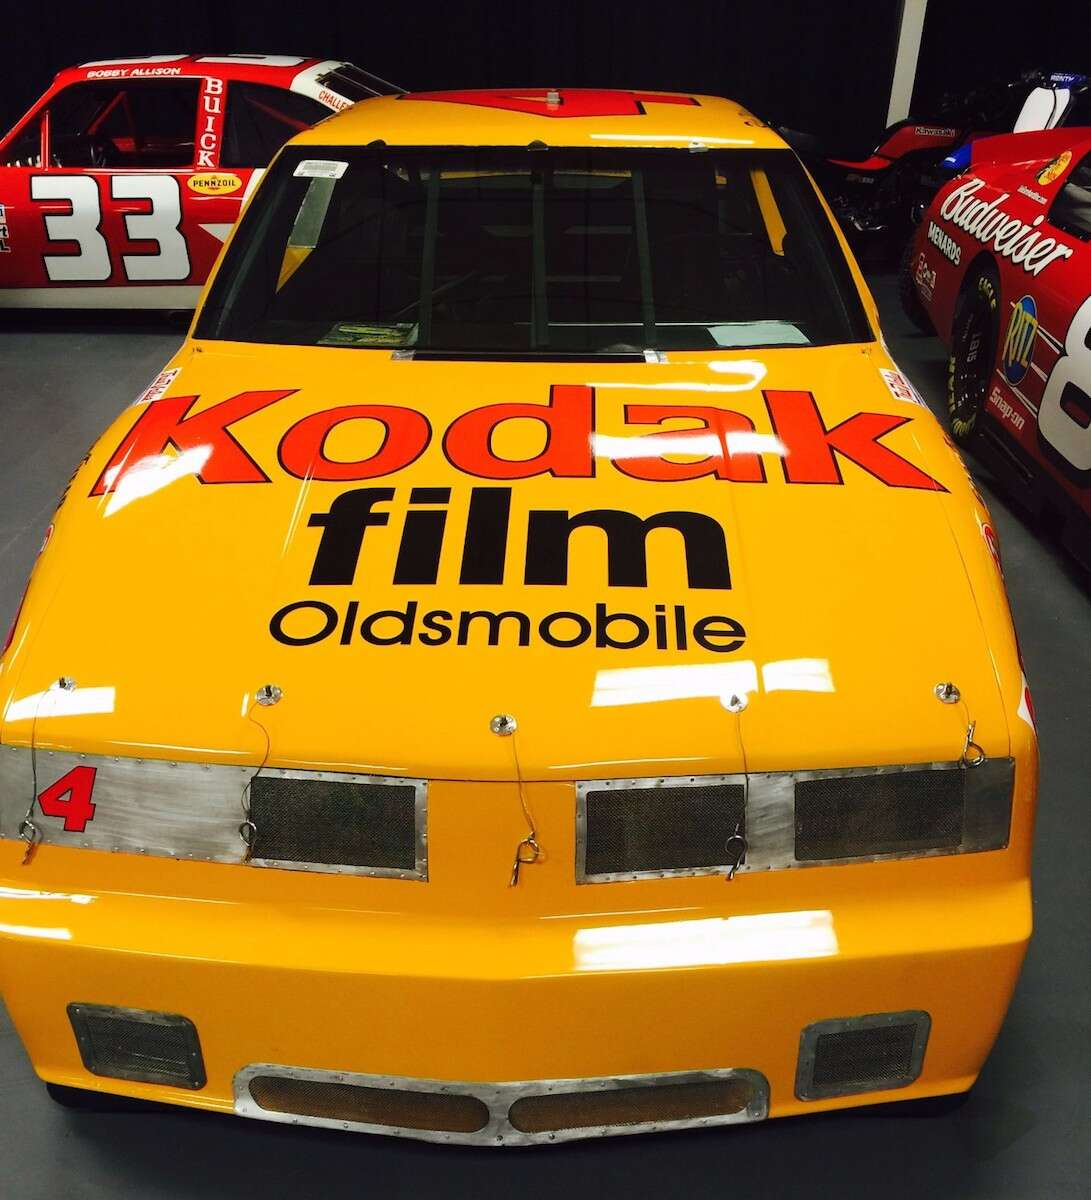 You Can Buy This 1986 Oldsmobile Delta 88 Cup Car Driven by Rick ...